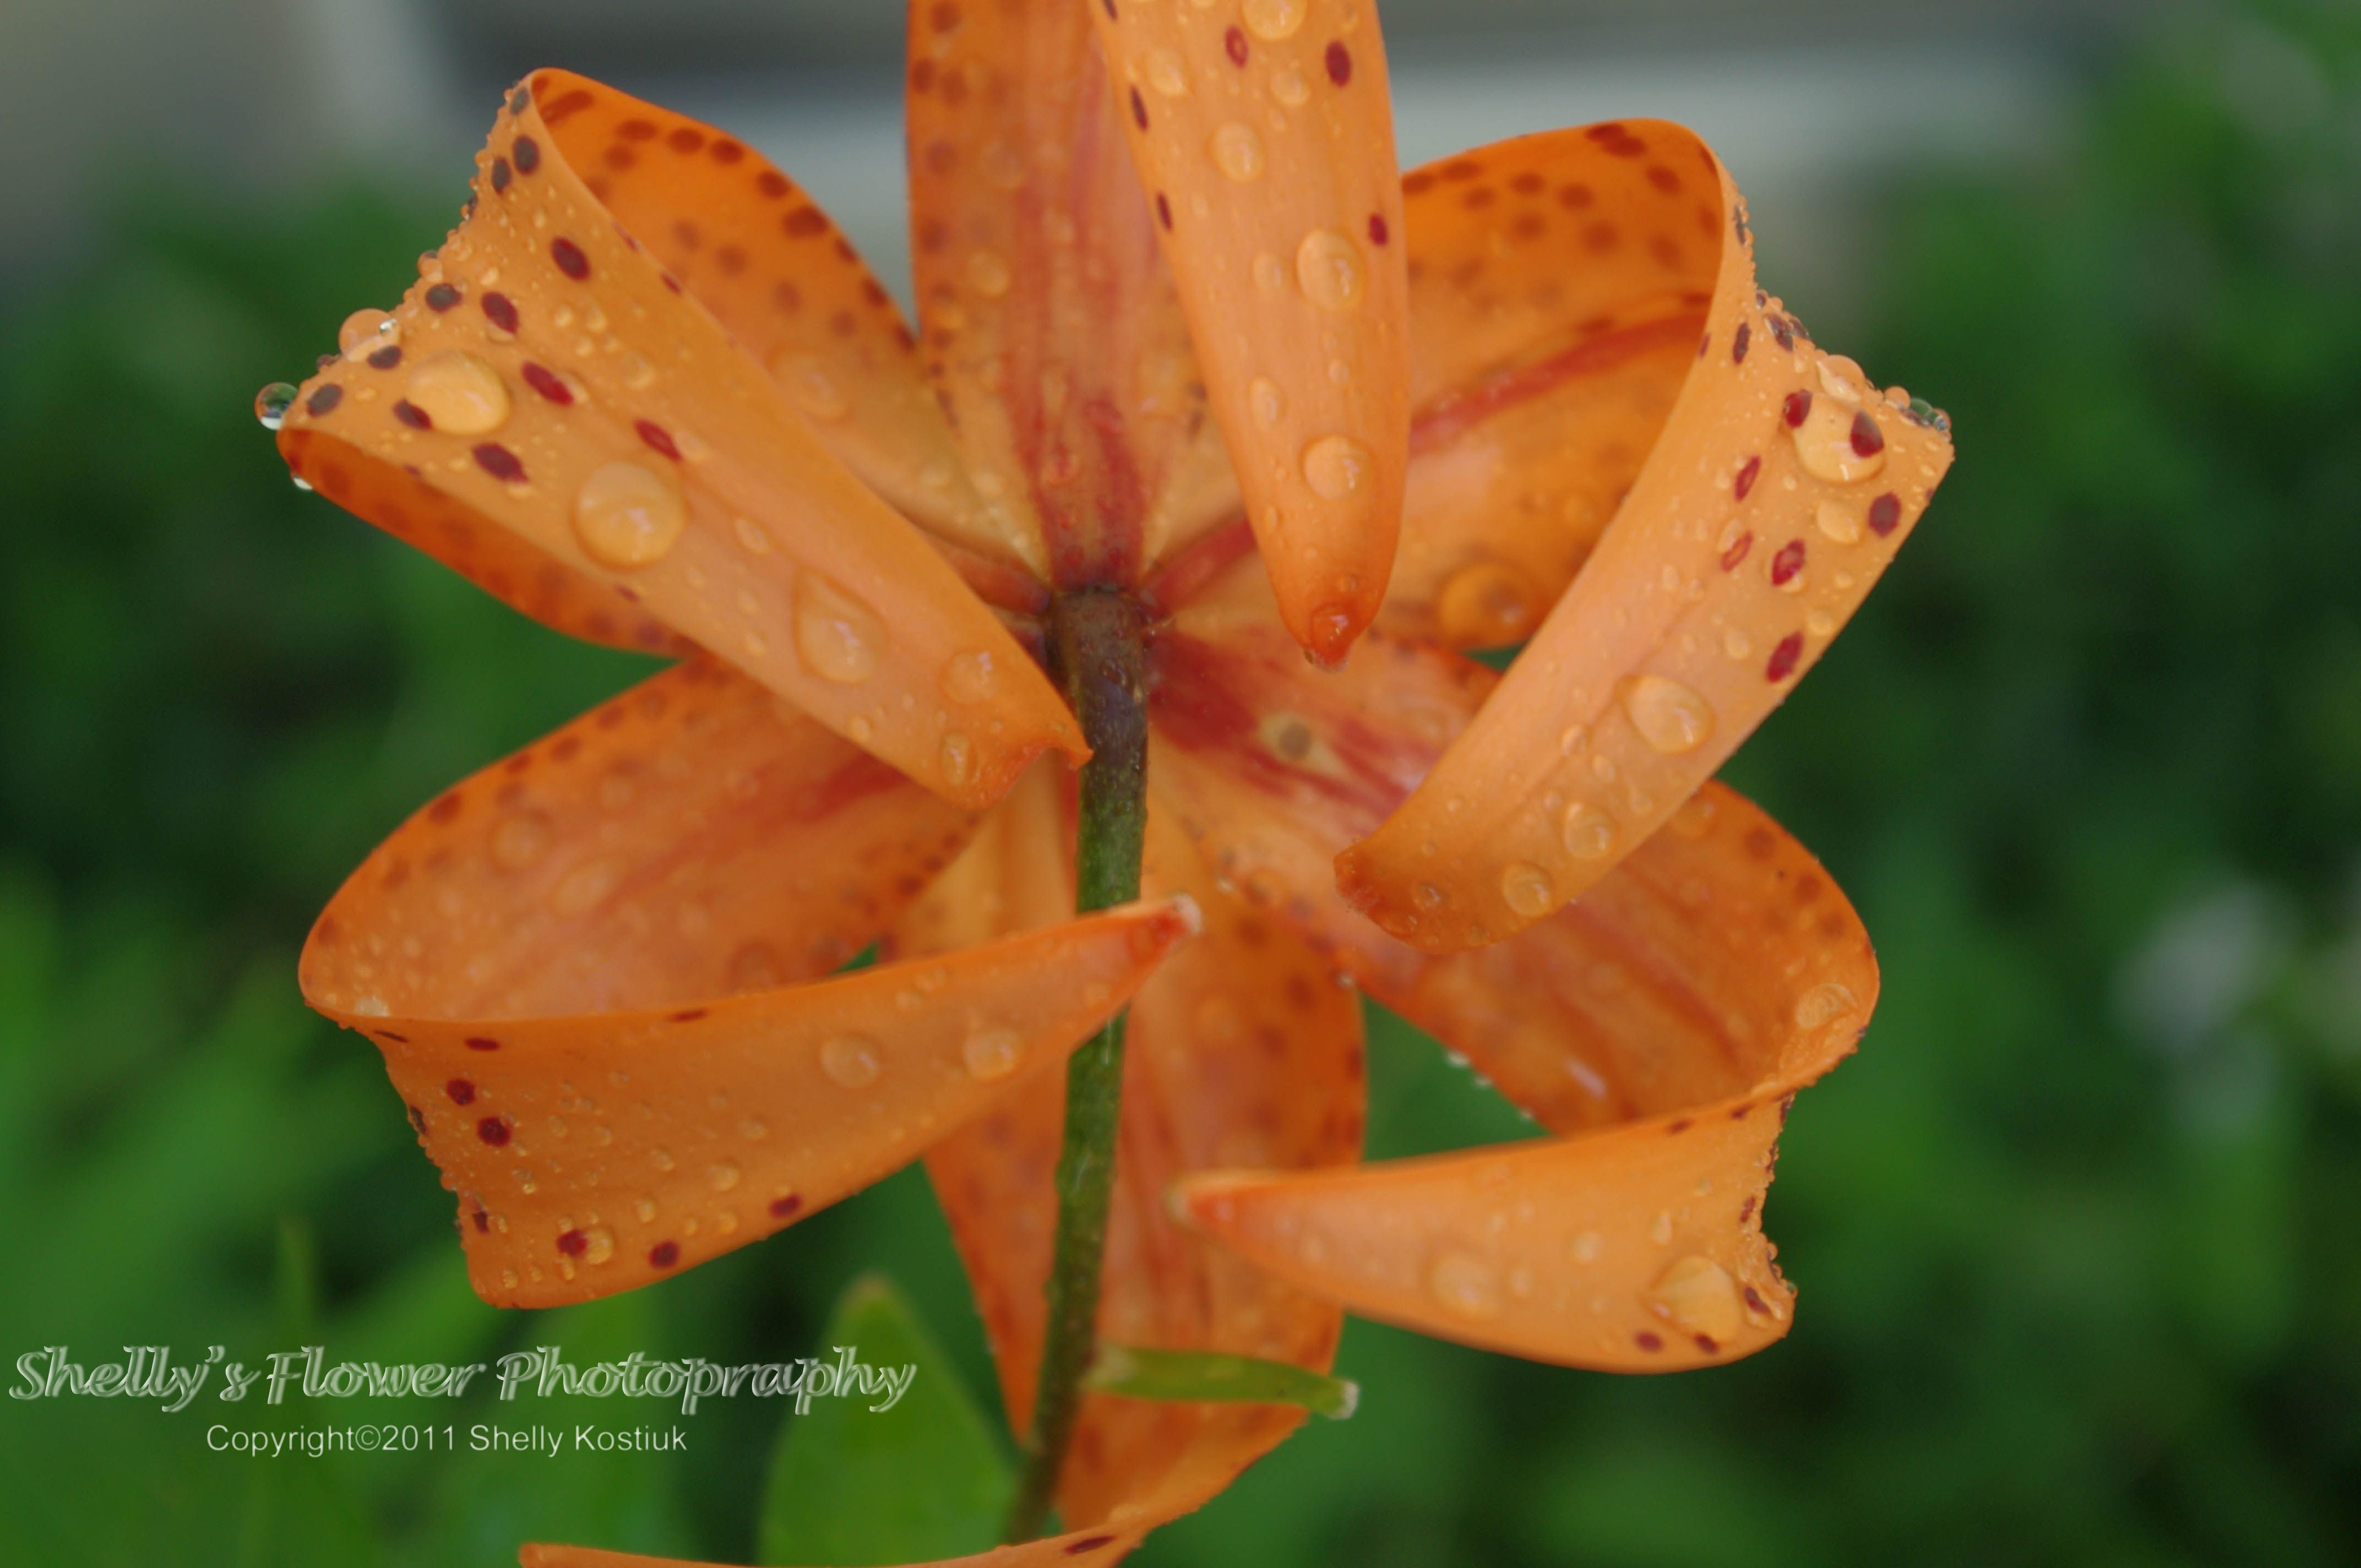 Rain on a the backside of a lily love taken photos of flowers rain on a the backside of a lily love taken photos of flowers after it rains izmirmasajfo